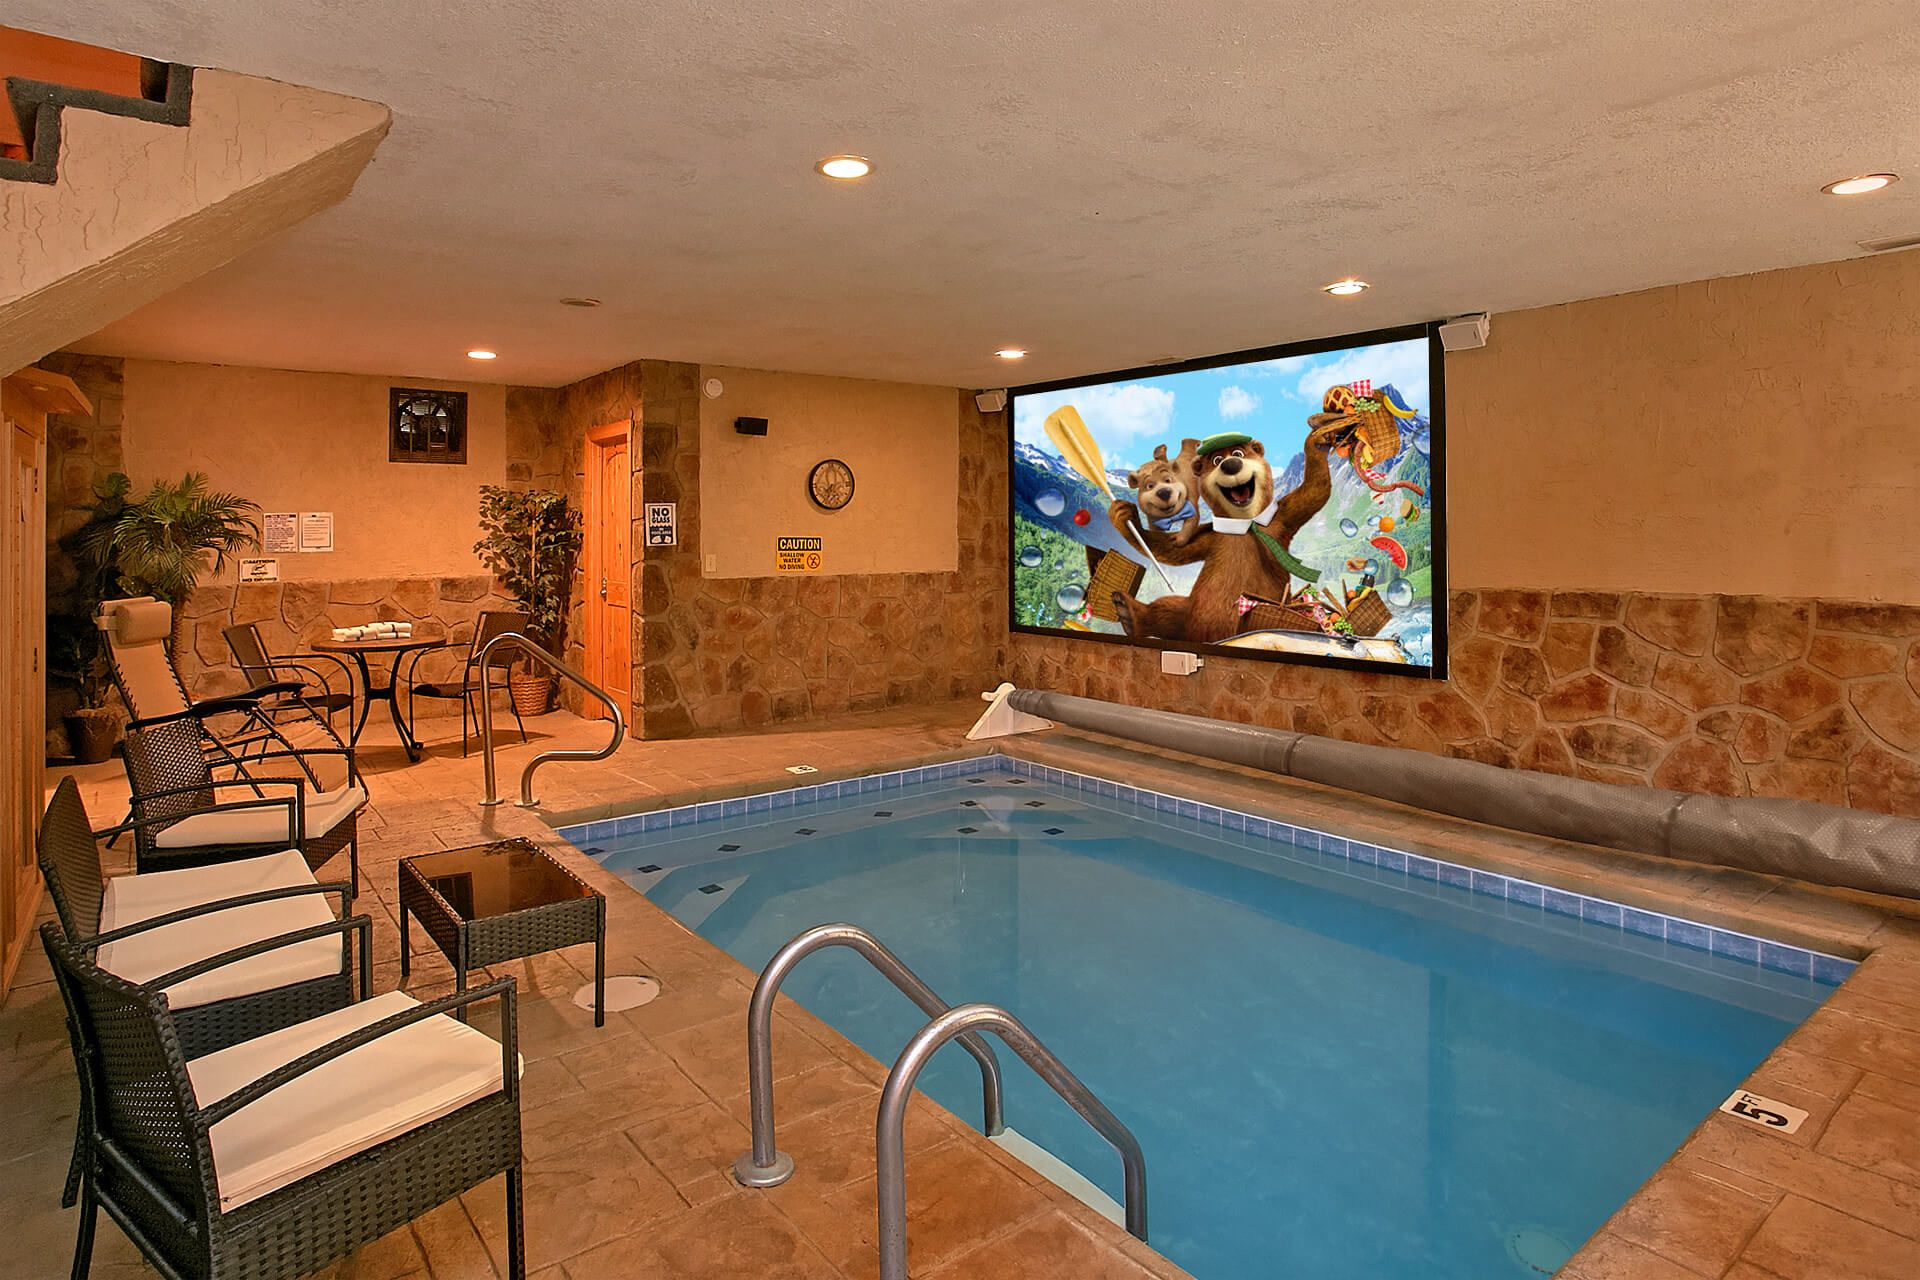 Skinny Dippin Cabin With Pool And Theater Indoor Pool Design Small Indoor Pool Luxury Swimming Pools